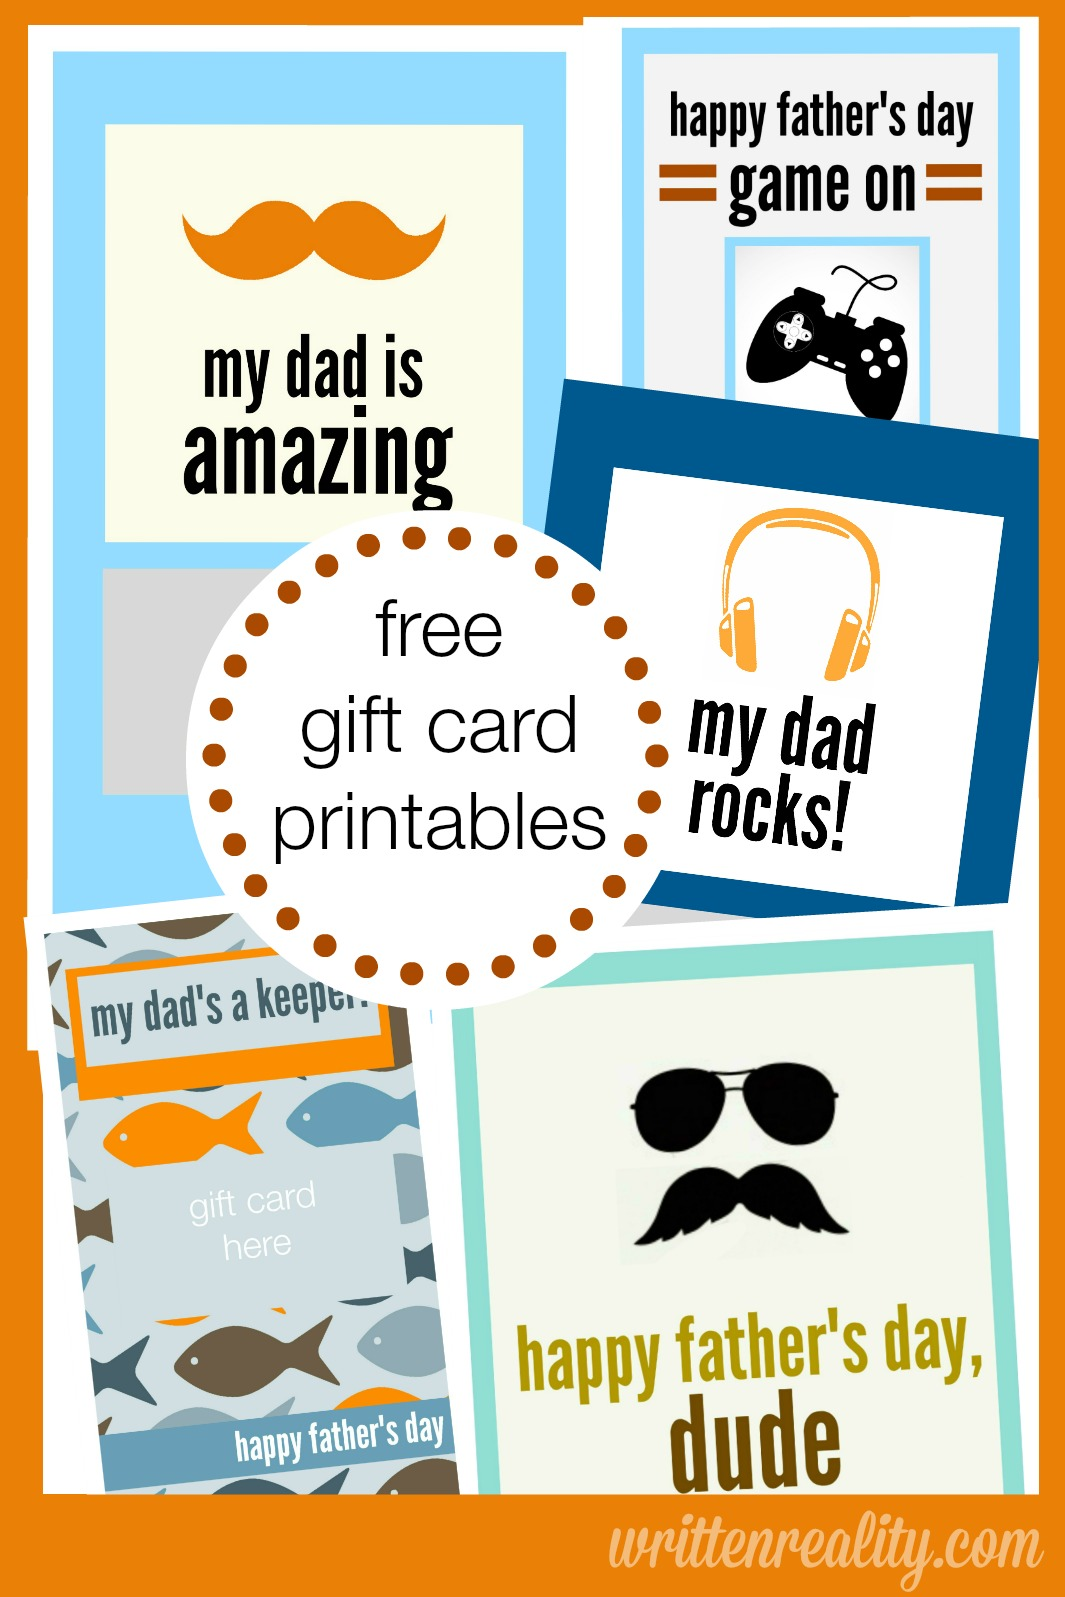 free-gift-card-printables